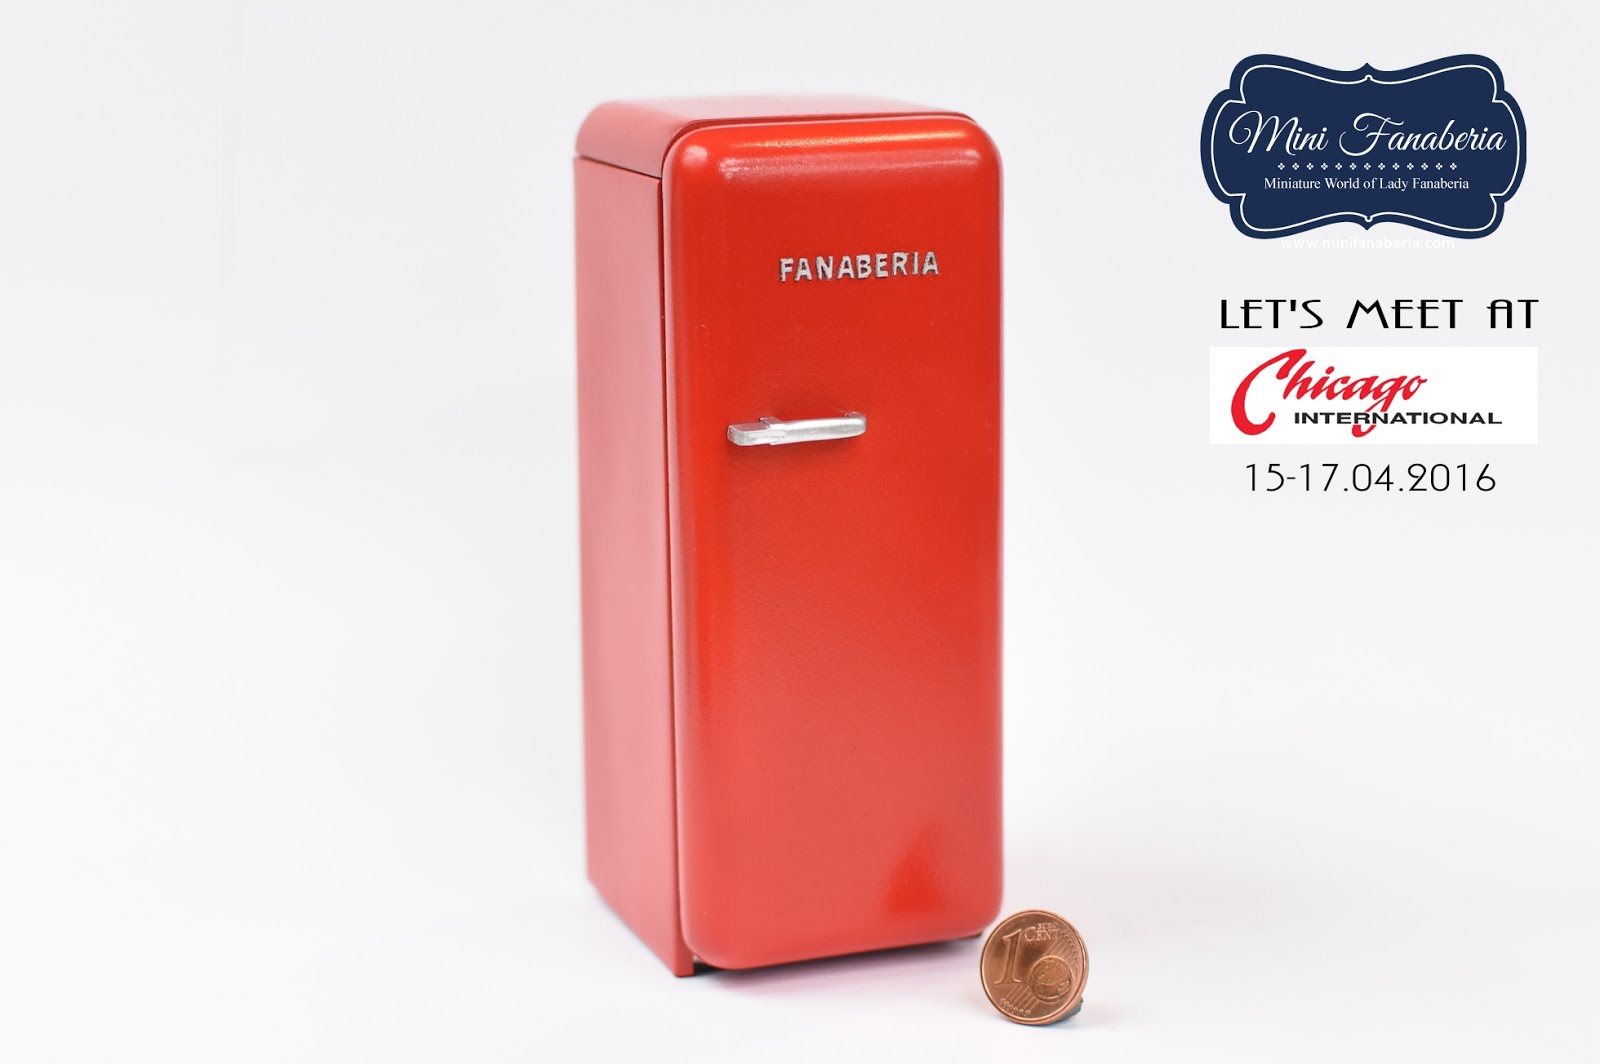 Red retro fridge